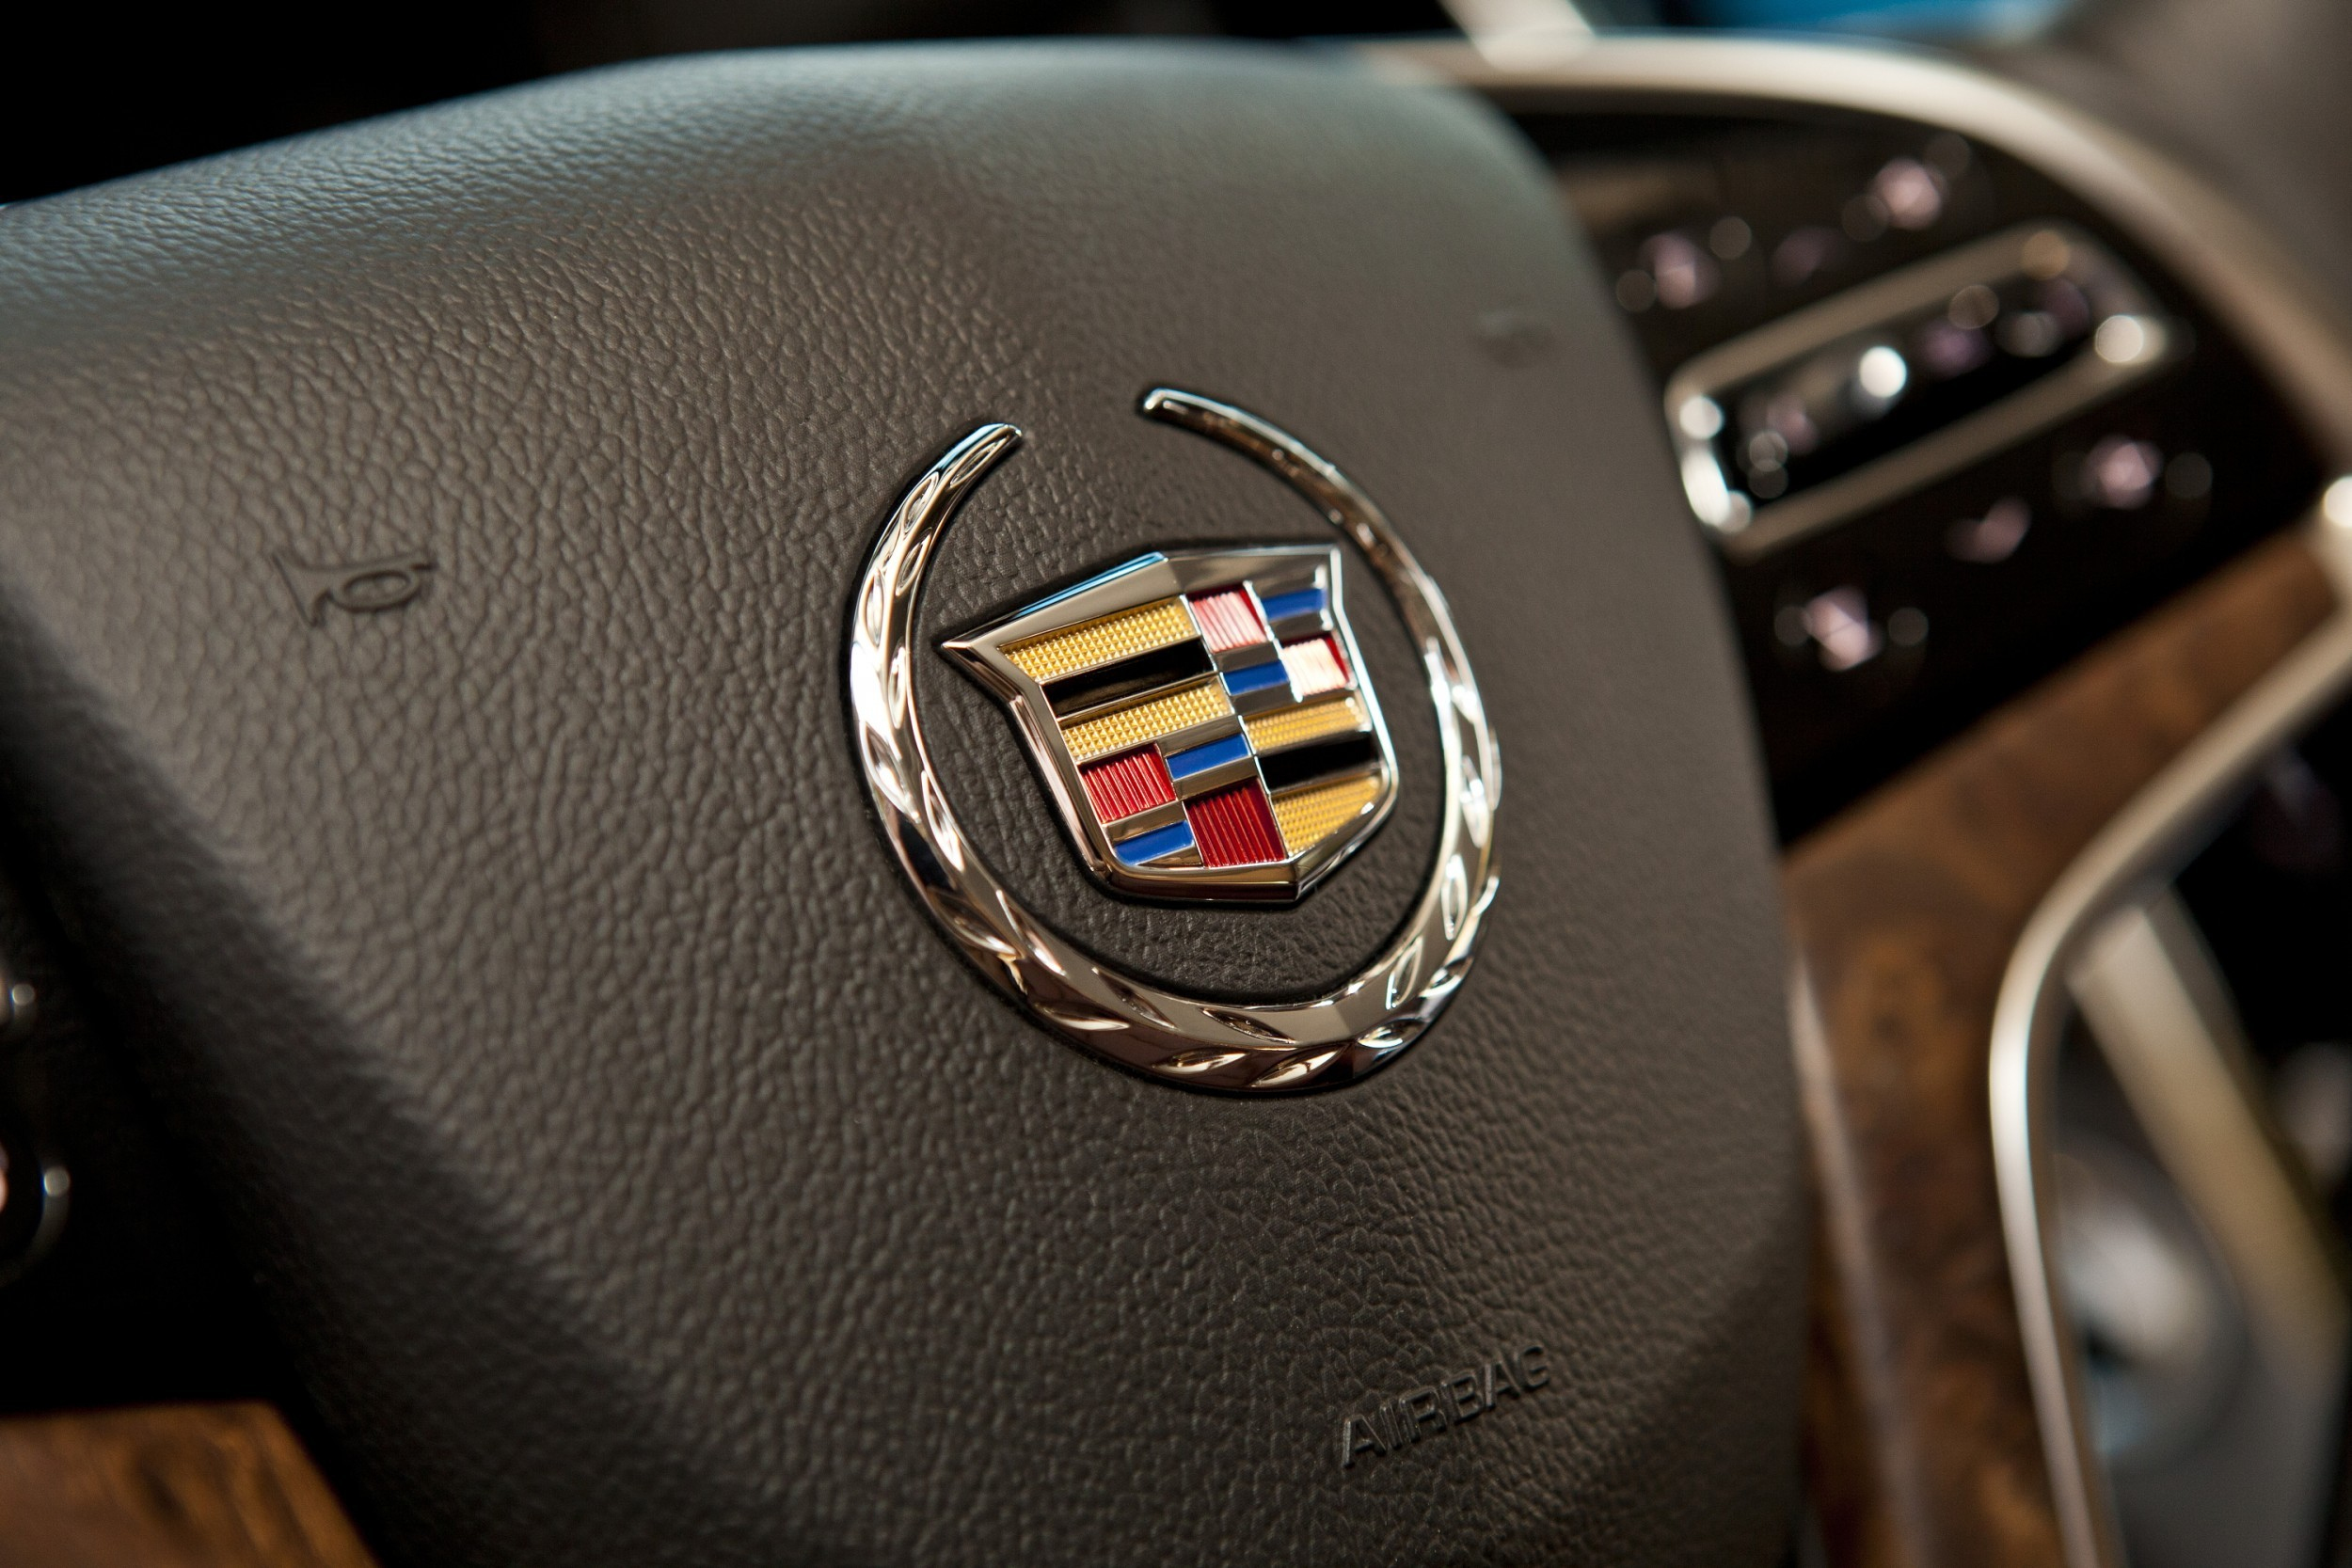 hd wallpaper other escalade platinum photos esv wallpapers cadillac images and